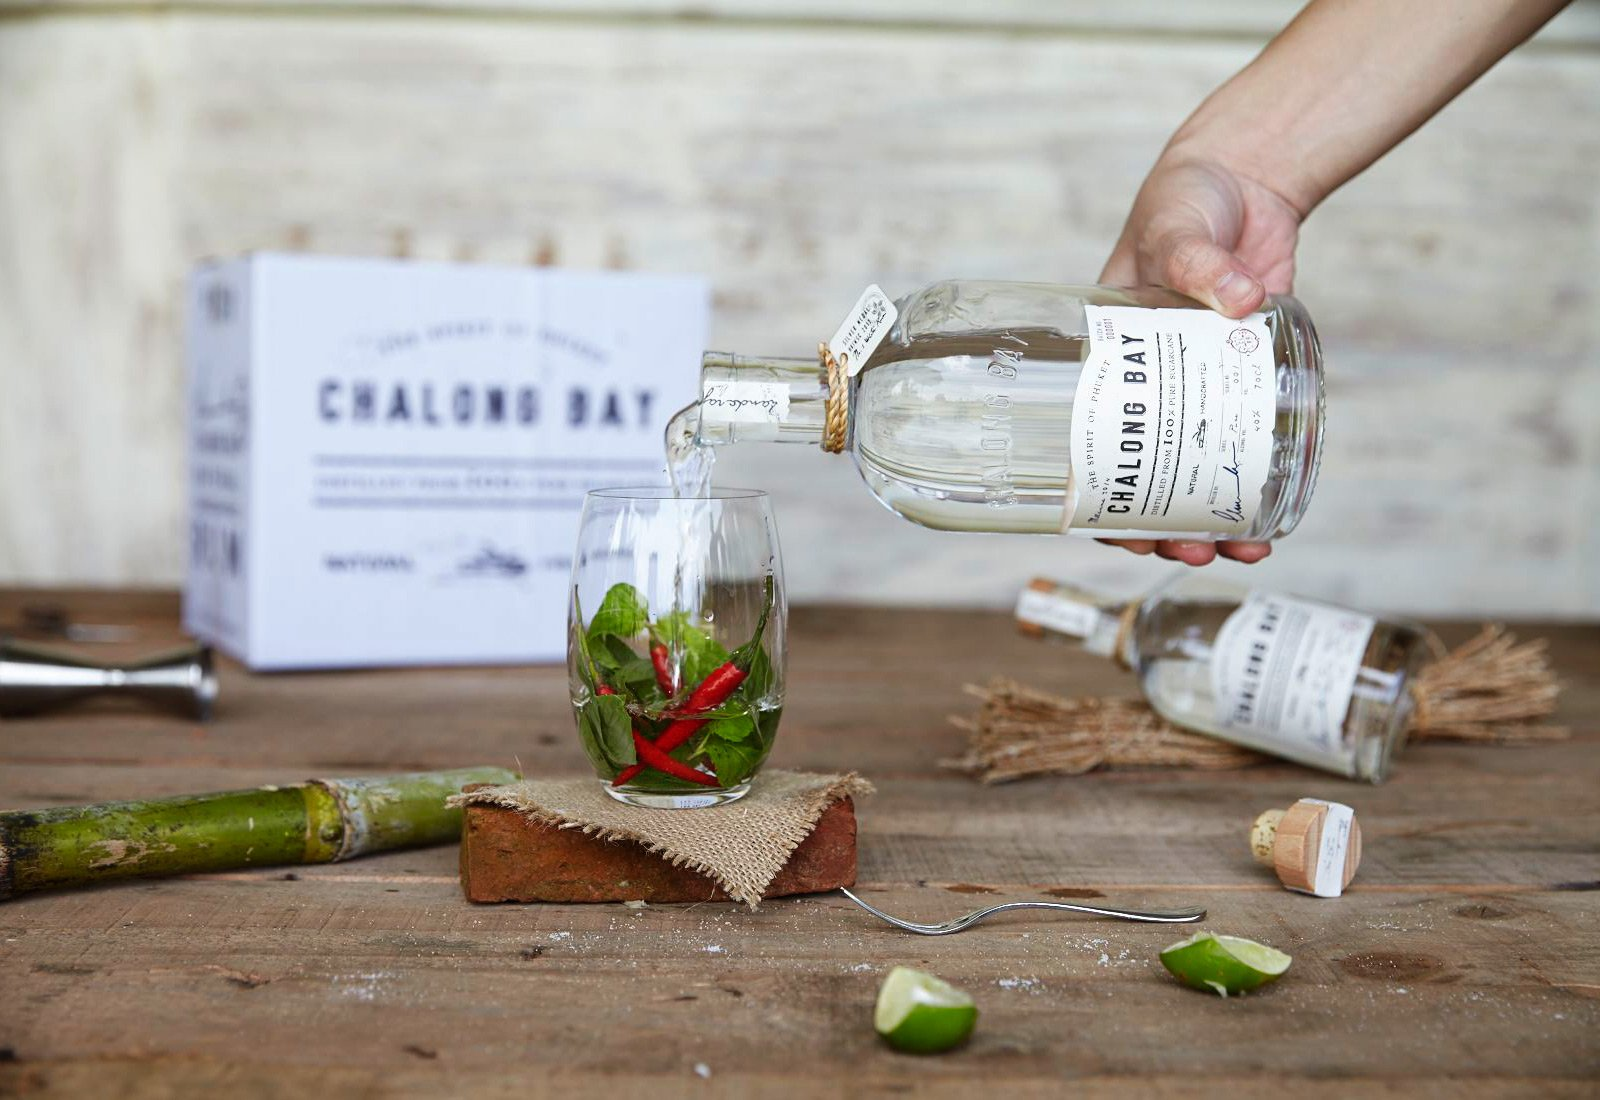 How to try local Chalong Bay rum in Phuket